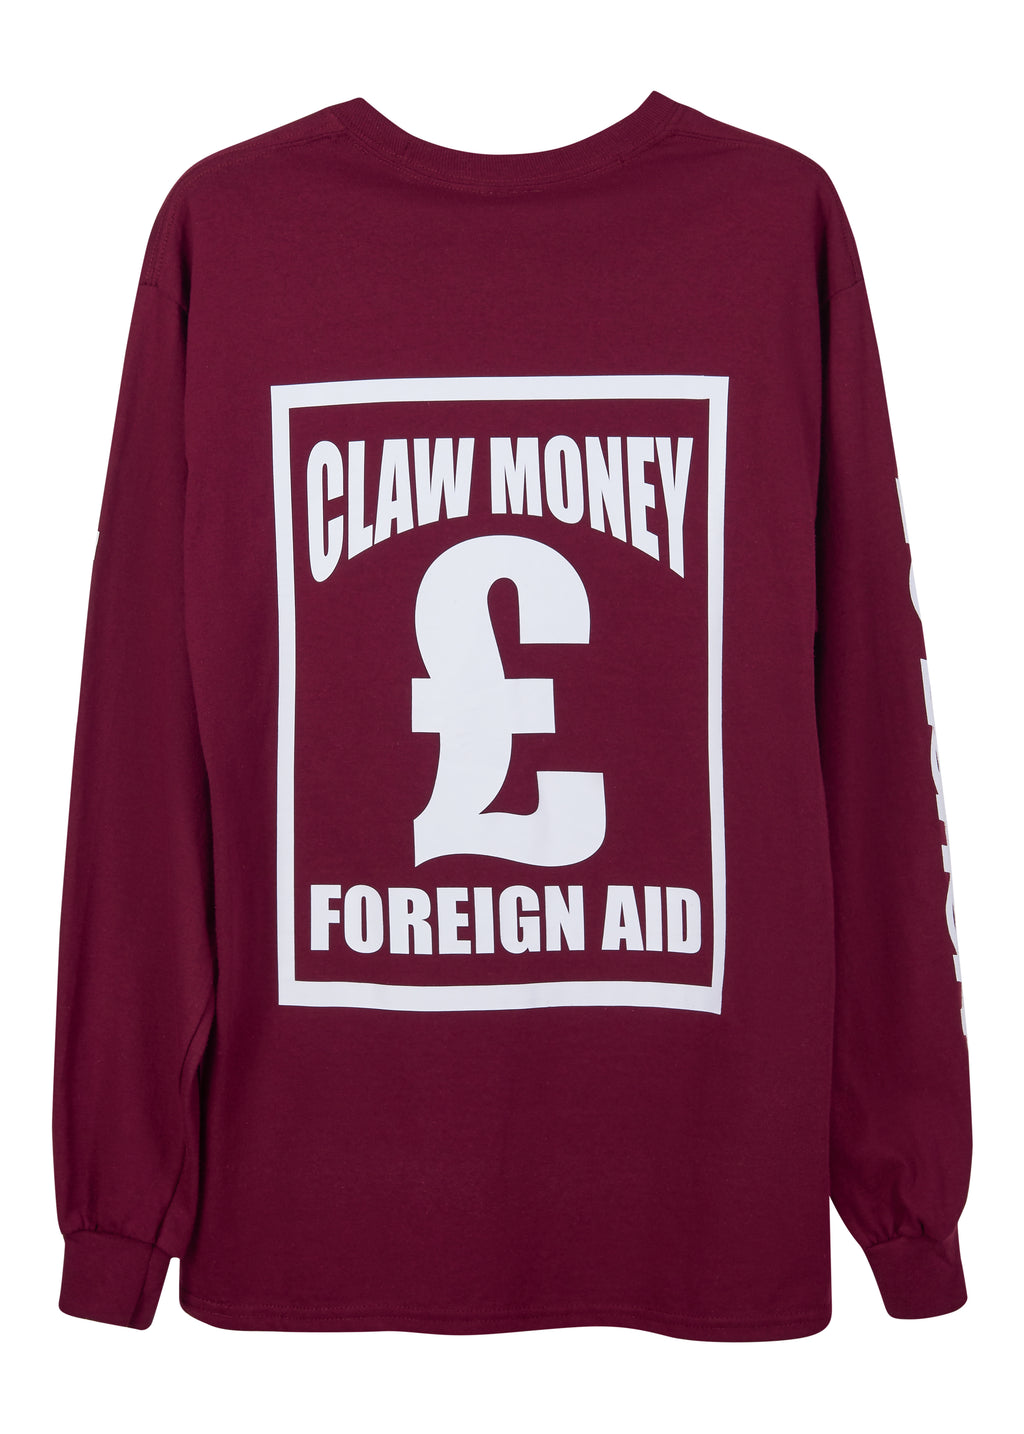 @clawmoney 'Branded Money Man' Long Sleeve Tee